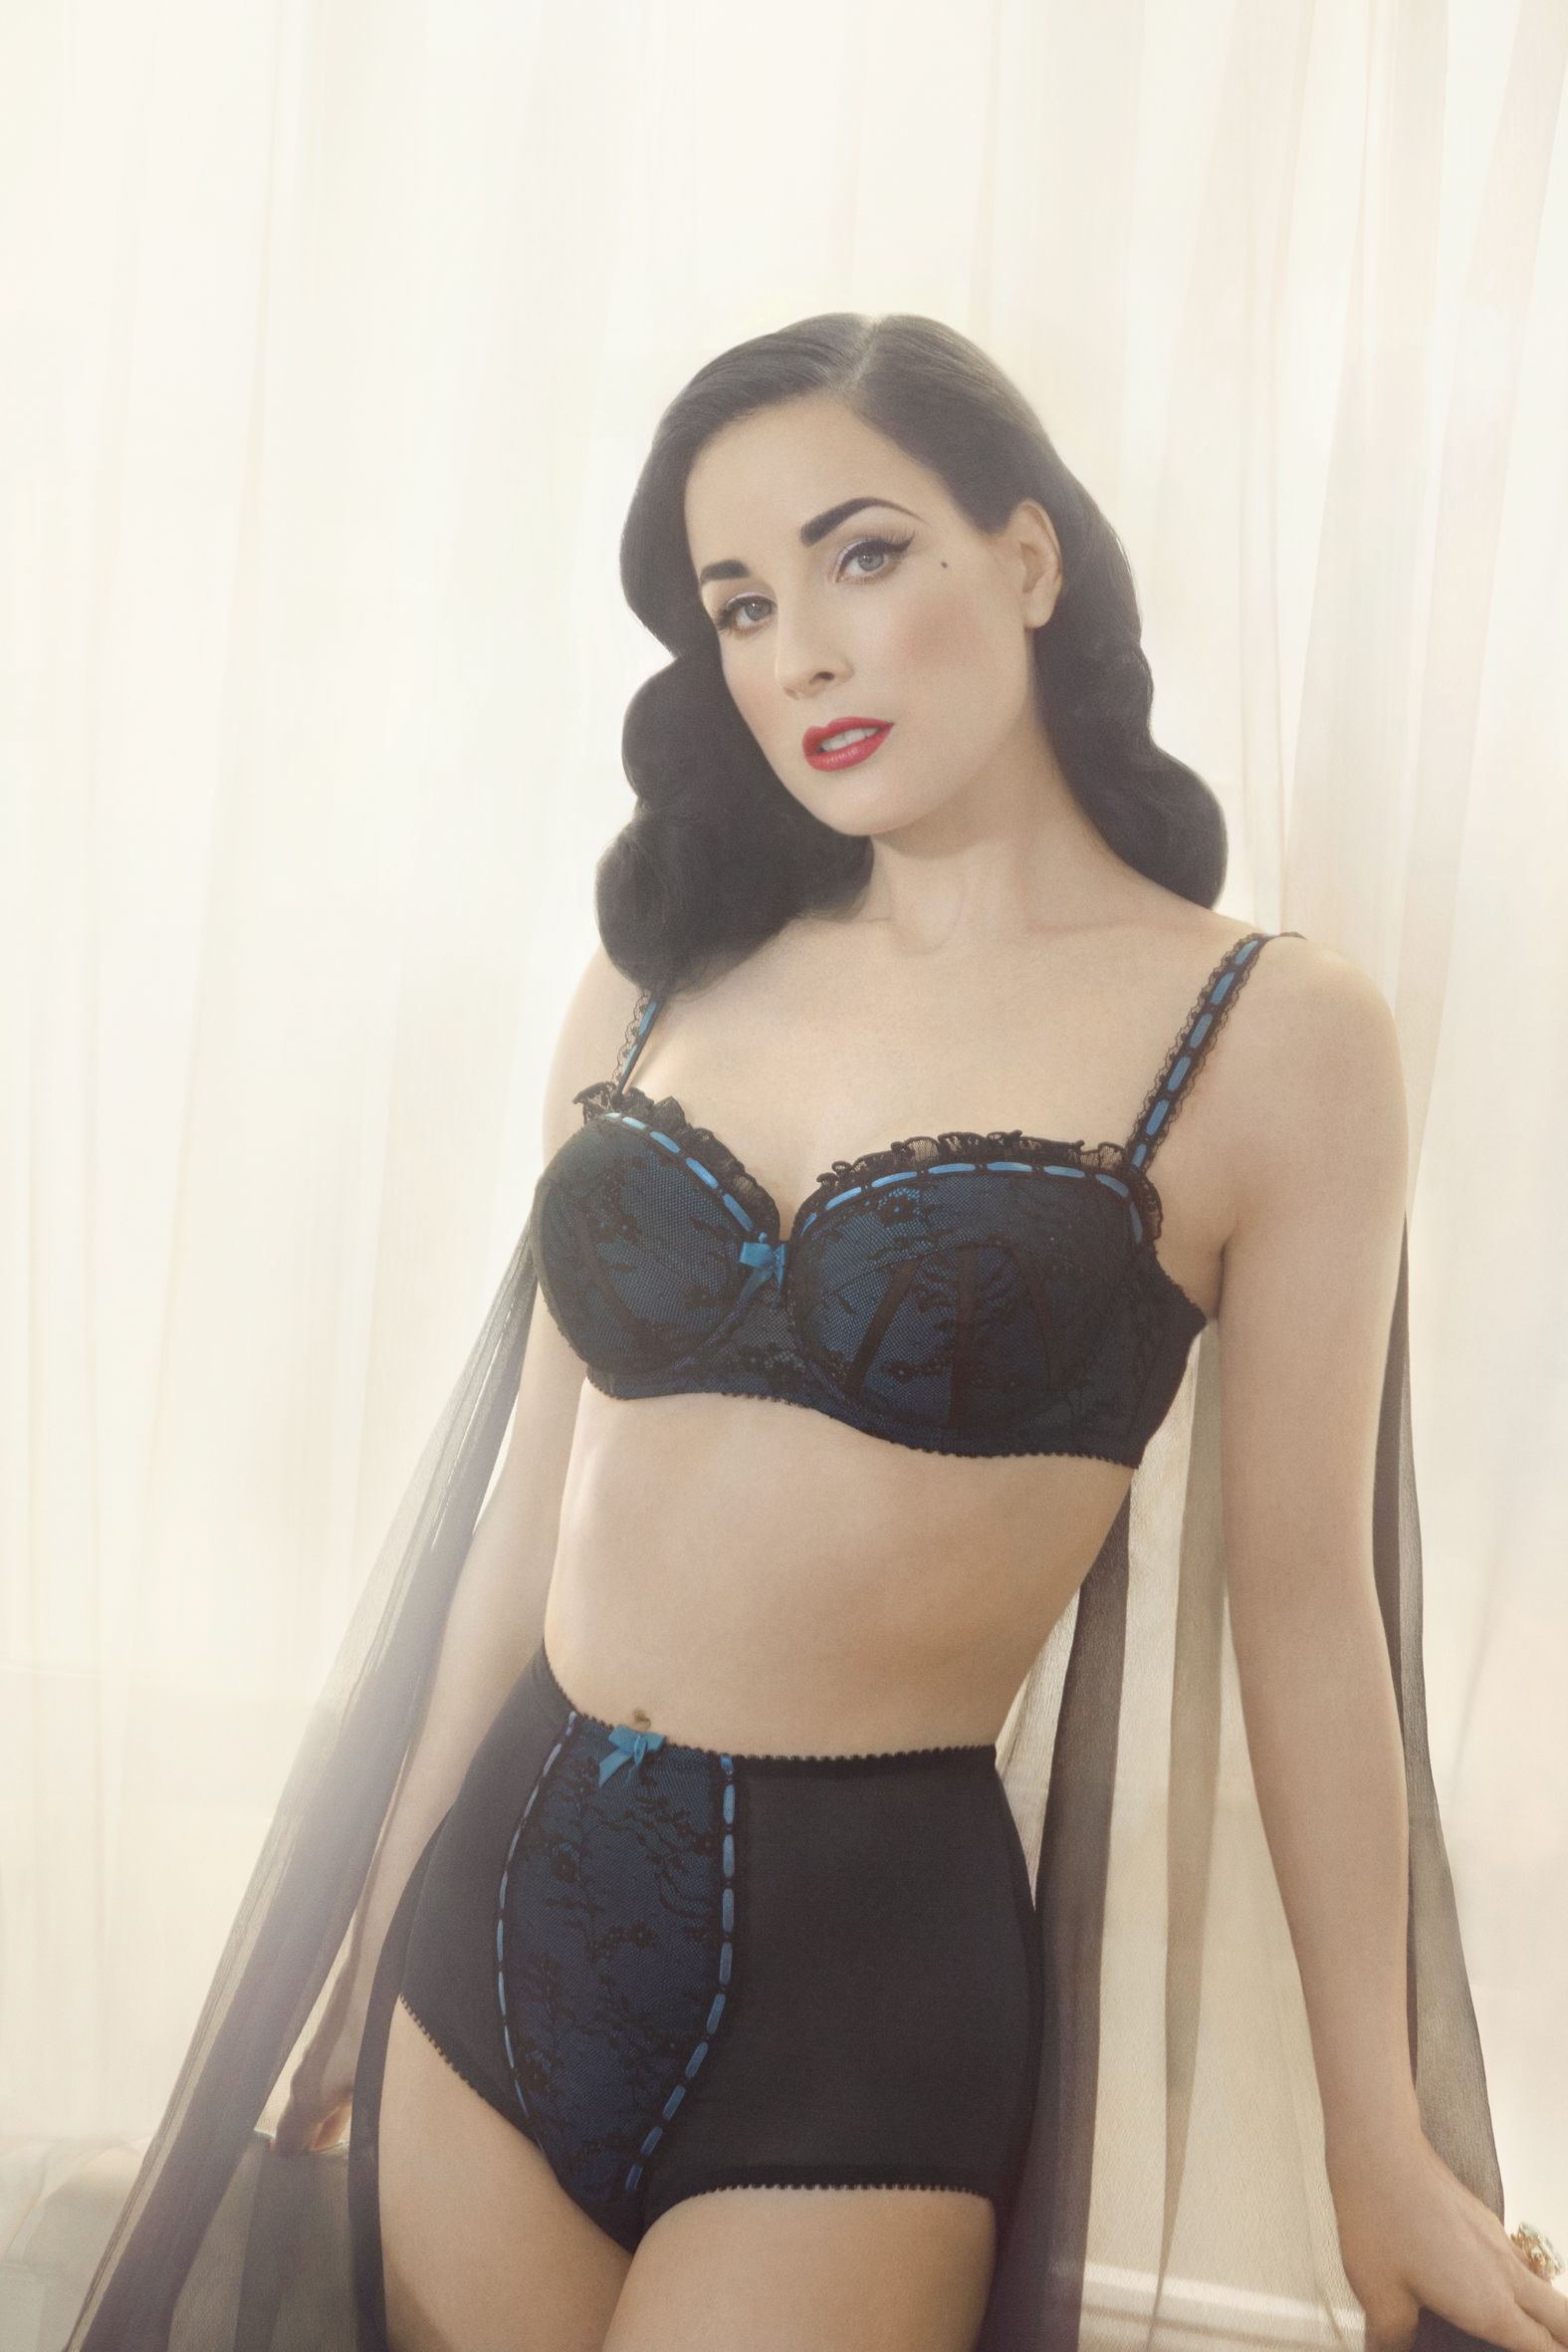 776b5127e846 Dita Von Teese (love her) is launching her lingerie line at Target  Australia and online in Feb!